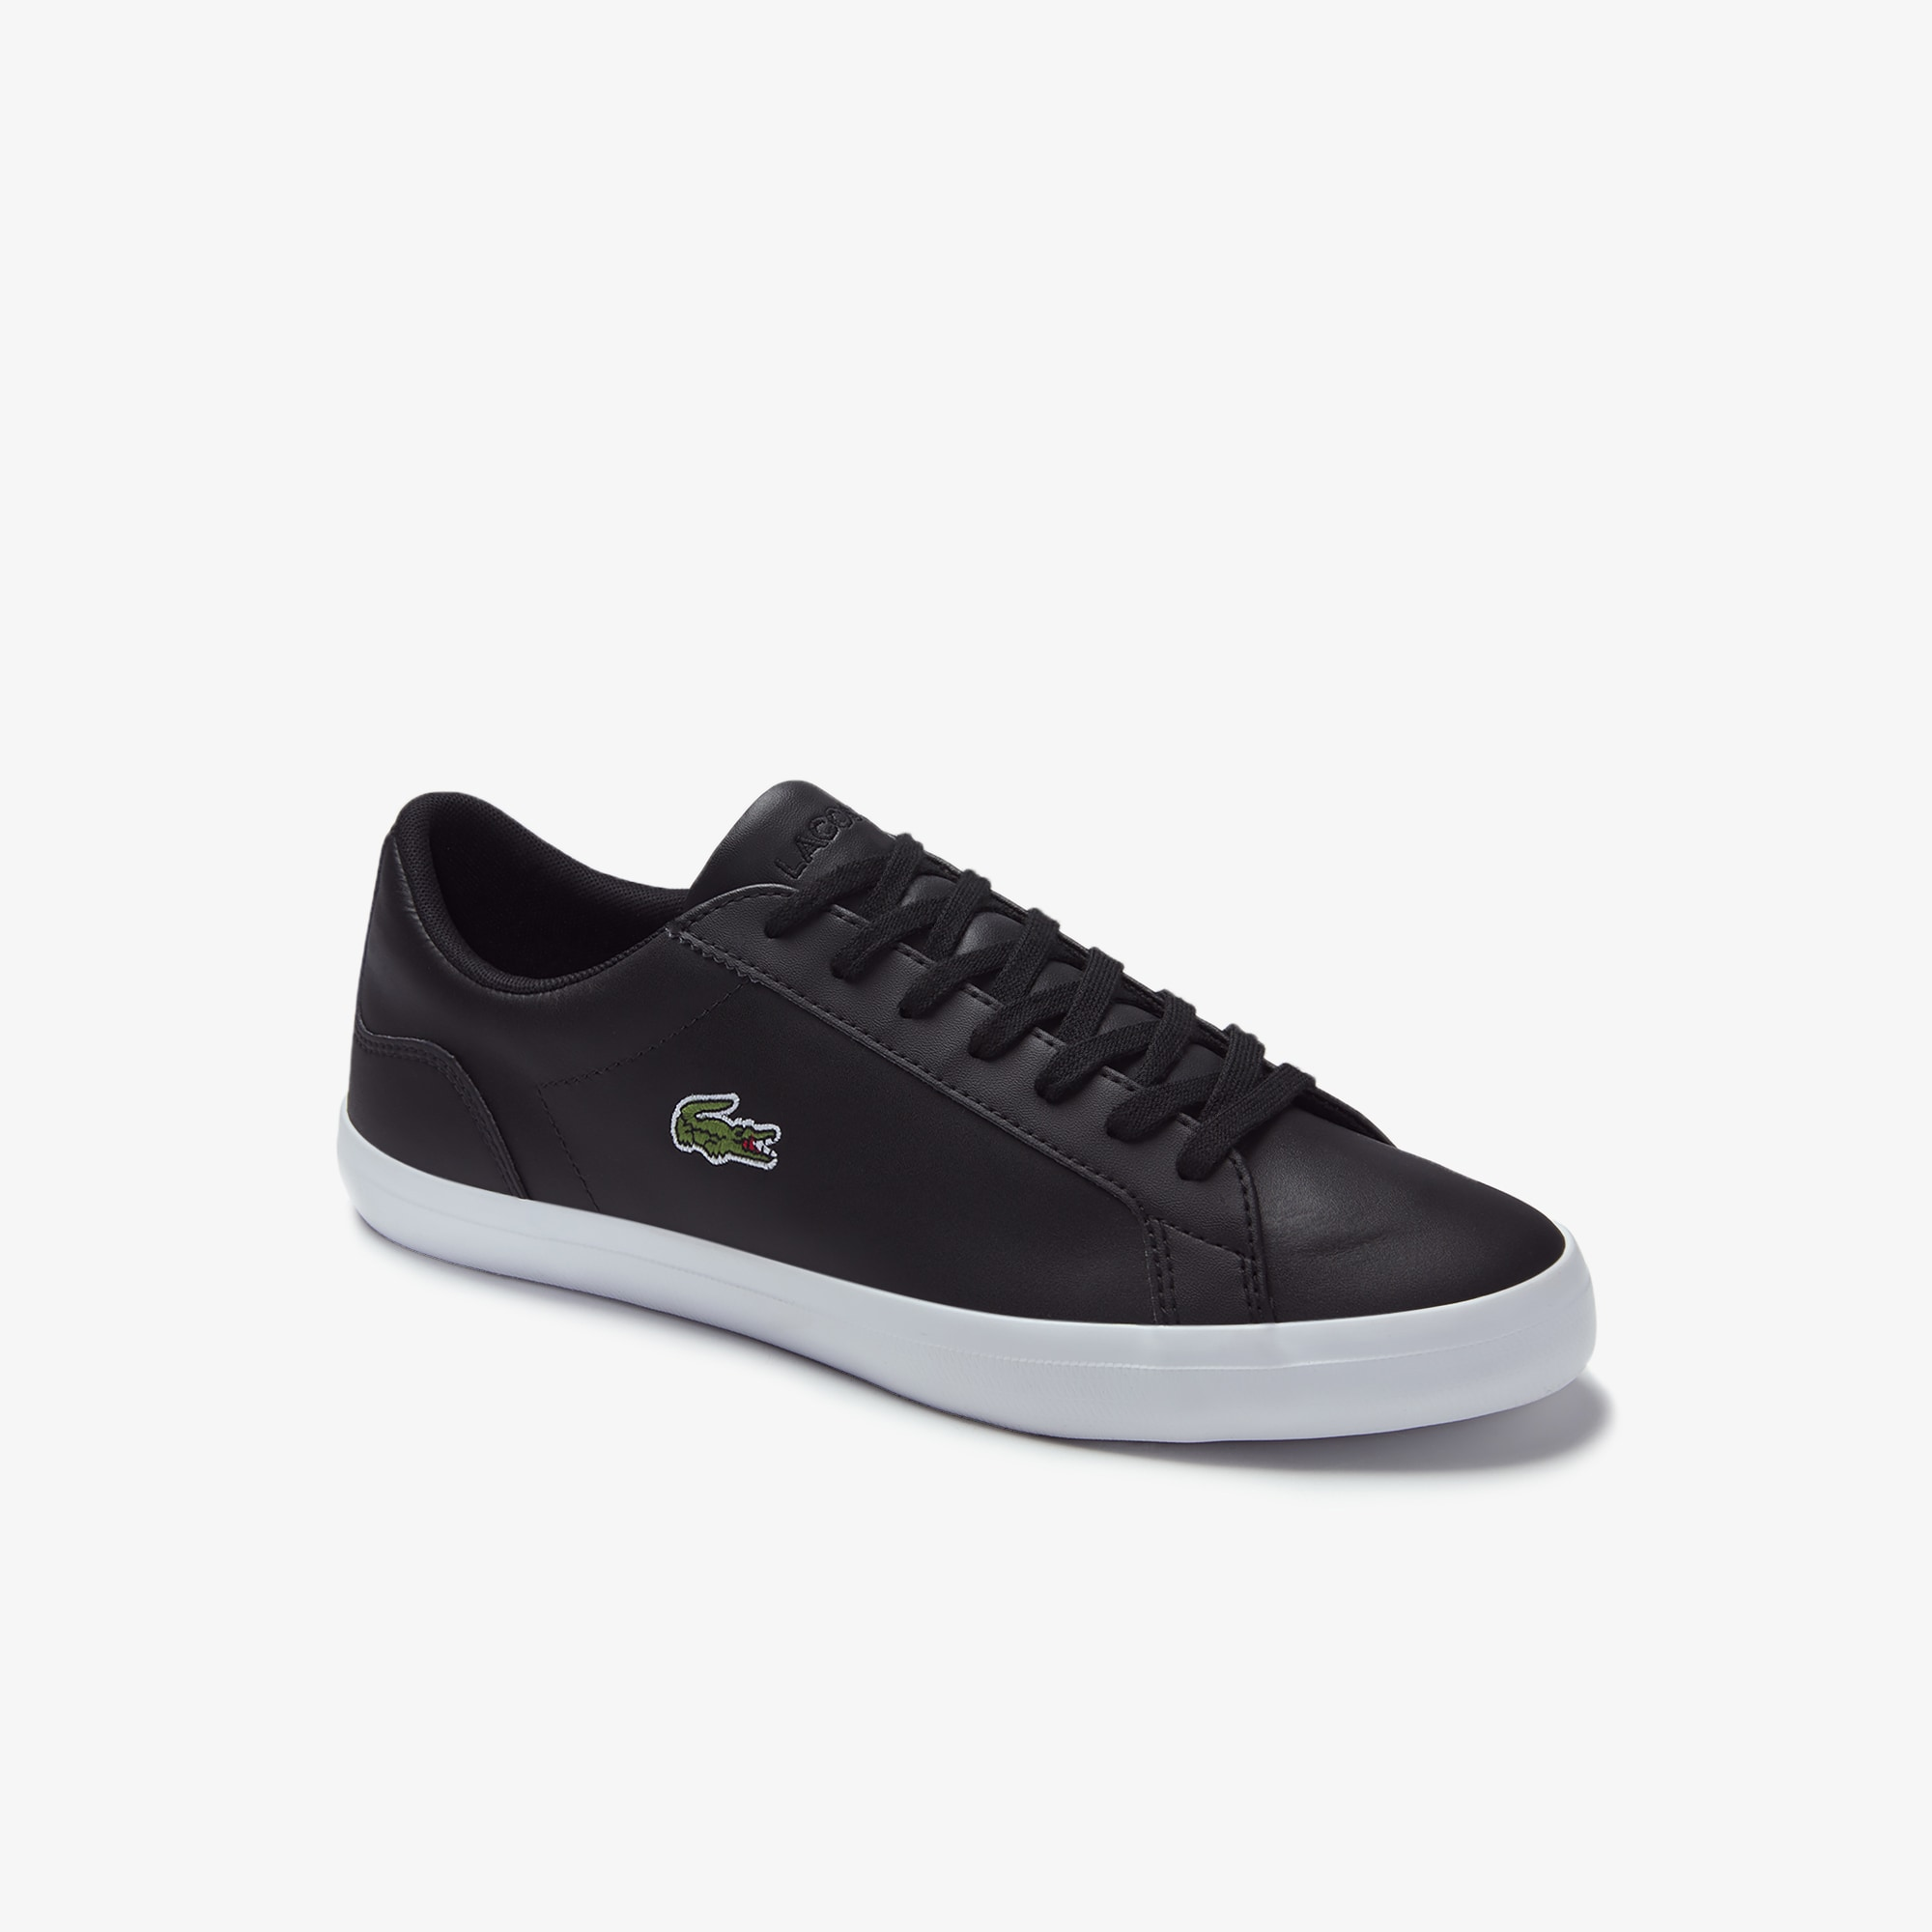 75ec2dd0f241 Men s Lerond BL Leather Trainer